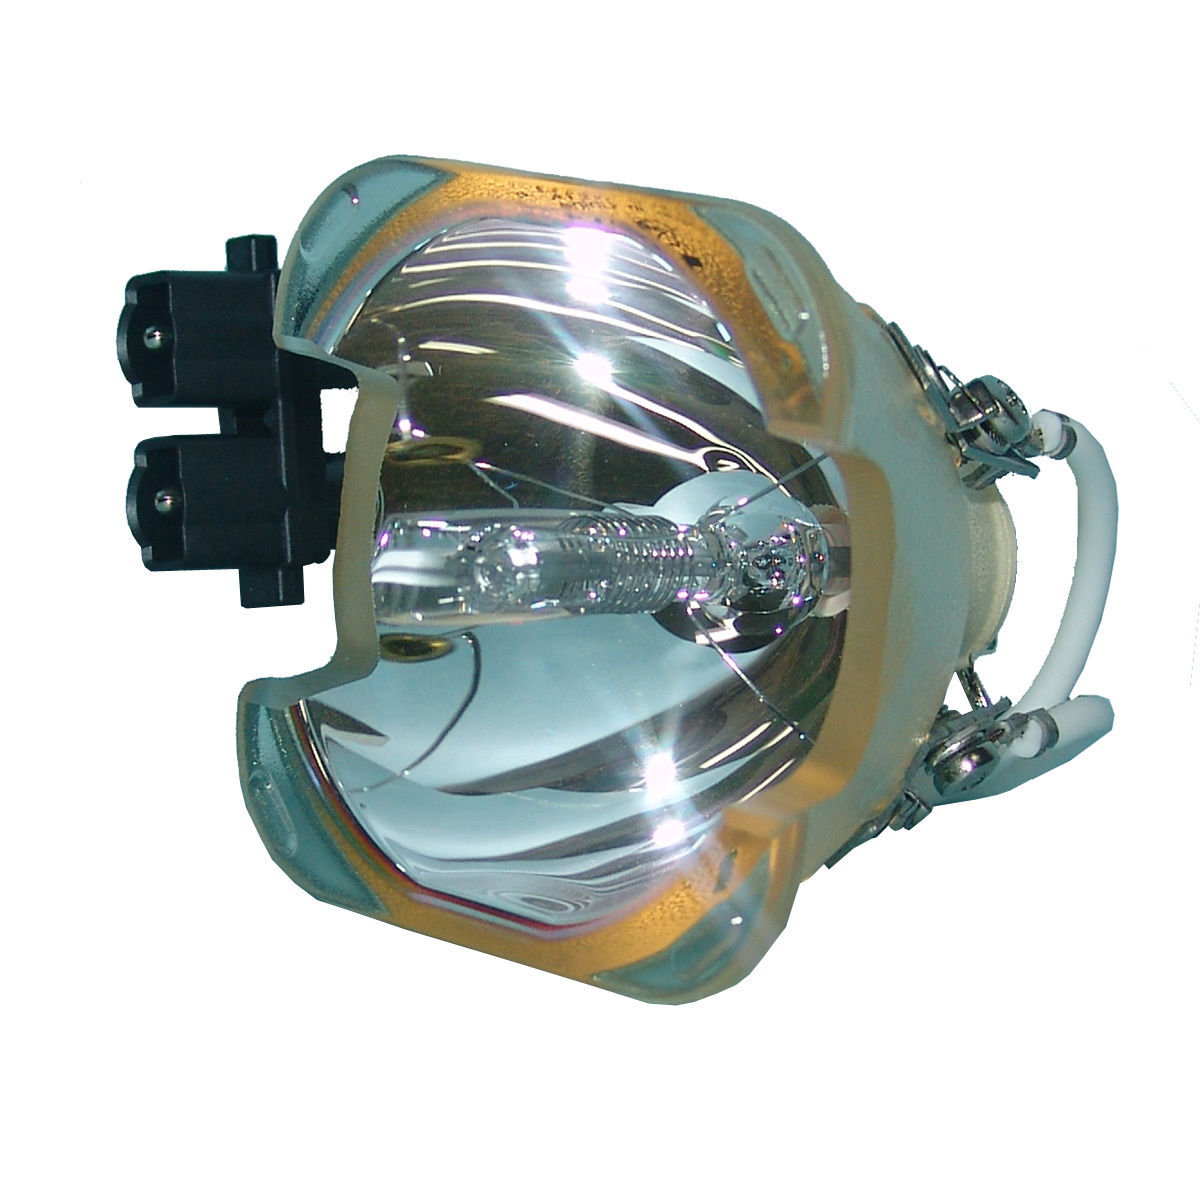 Compatible Bare Bulb BL-FU250B BLFU250B SP.86501.001 for Optoma EP756 / EP757 / H65A Projector Lamp Bulb without housing